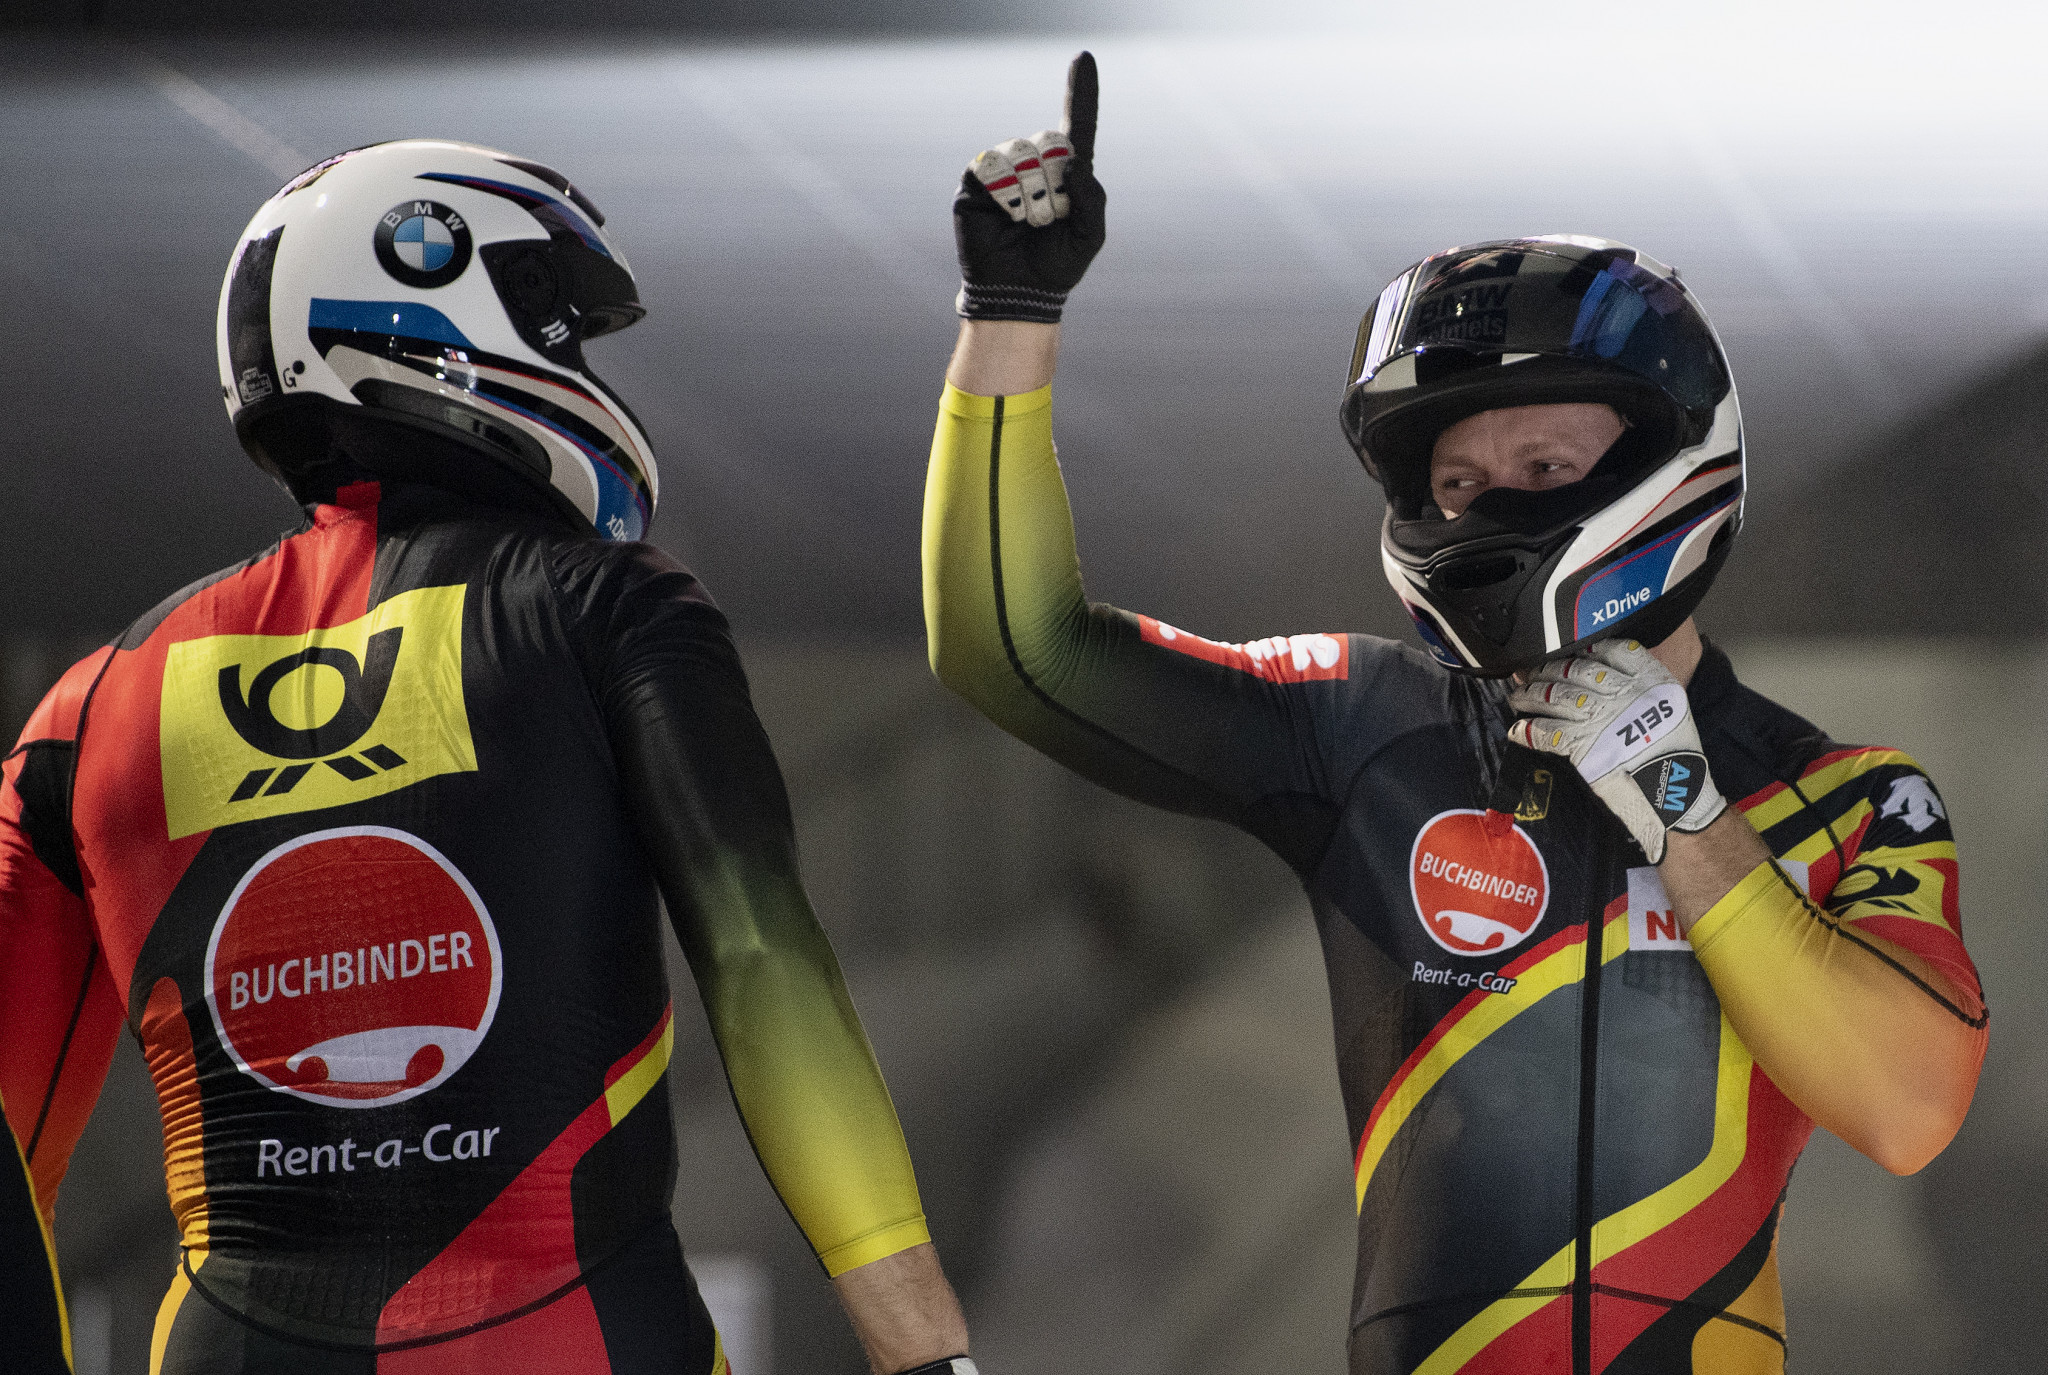 Königssee in Germany has been named as the new host of the 2021 Luge World Championships ©Getty Images